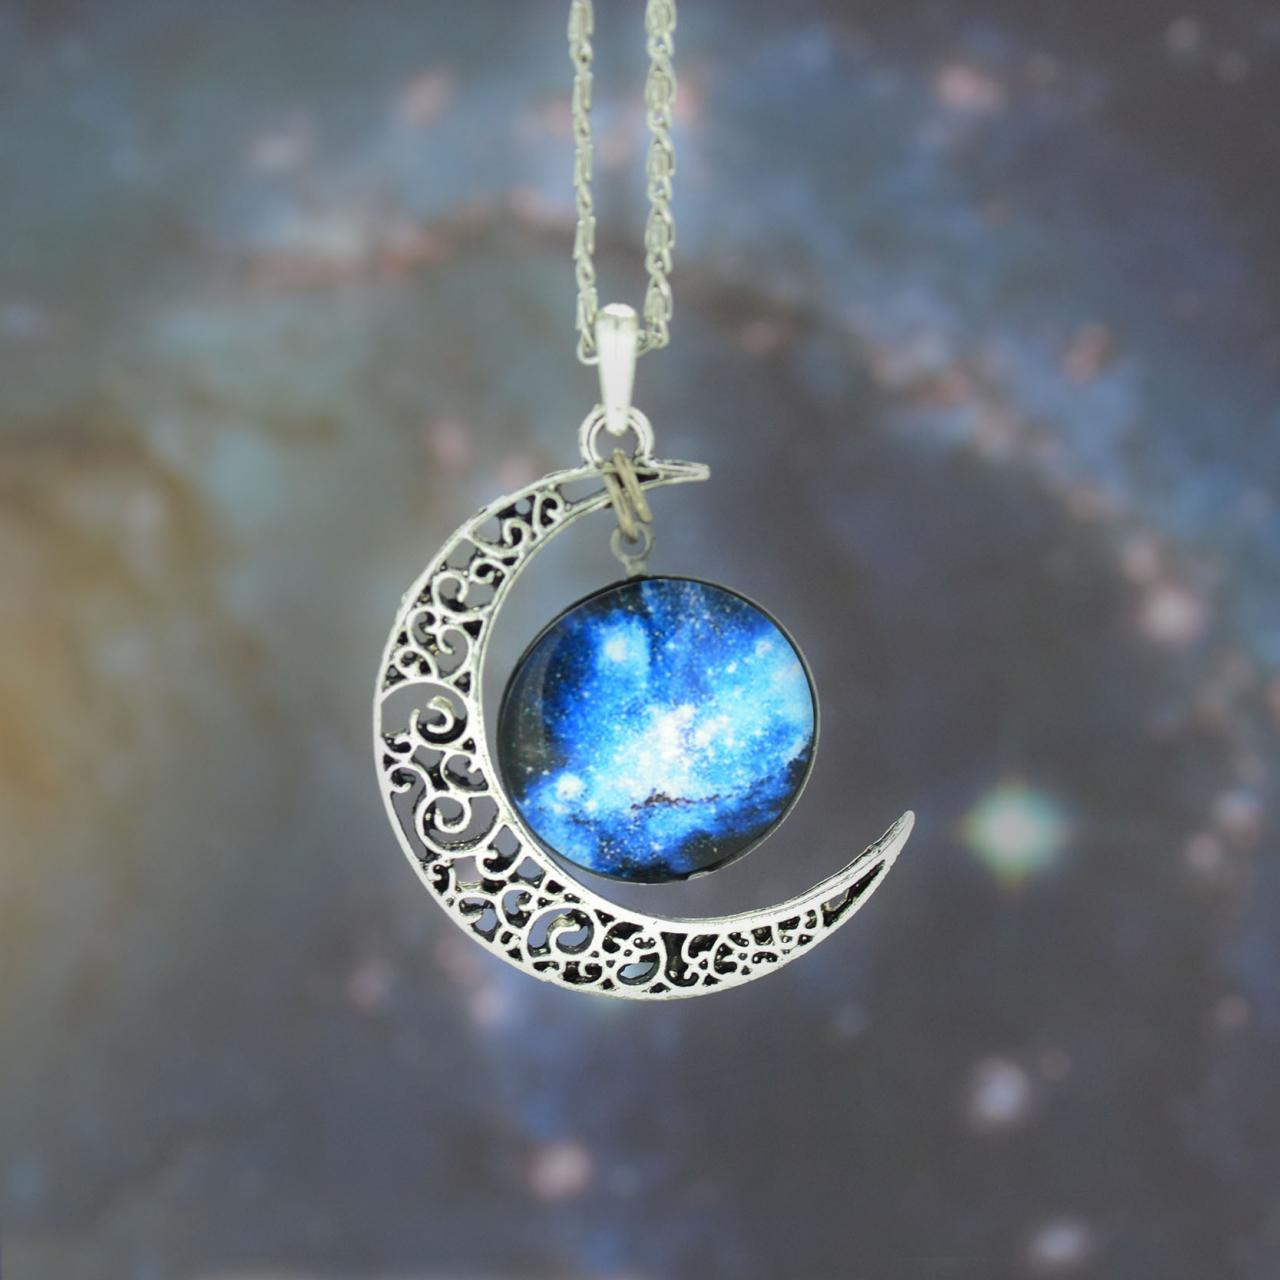 galaxy necklace silver moon pendant necklace moon necklace charm necklace bib necklace hollow. Black Bedroom Furniture Sets. Home Design Ideas